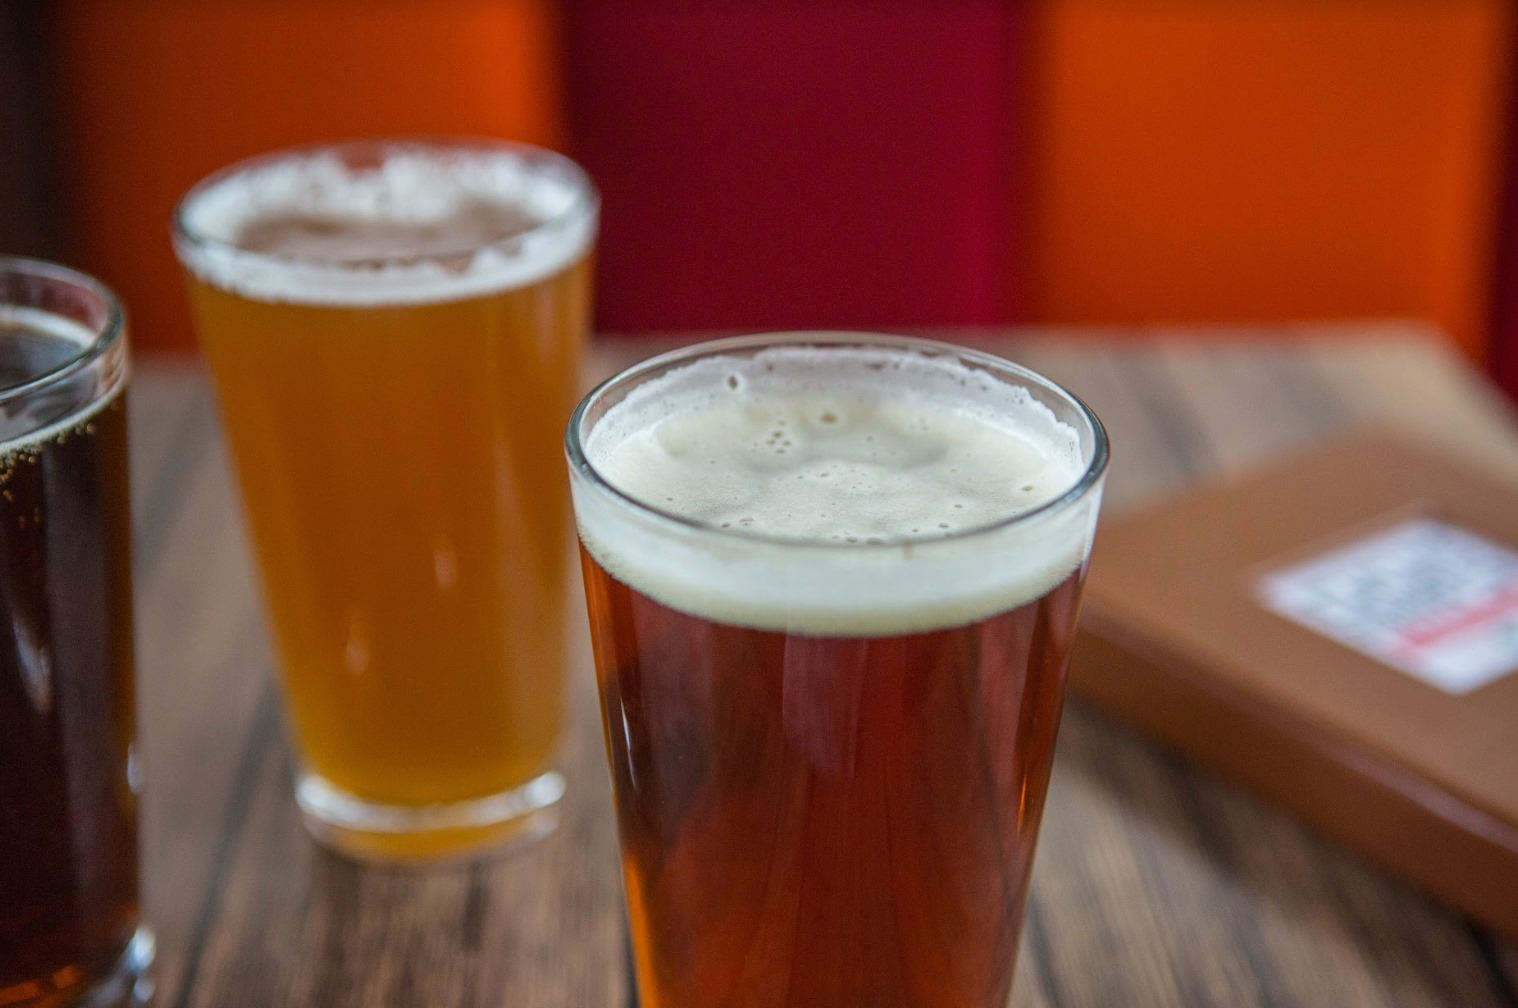 $2 Draft Beer for American Beer Day